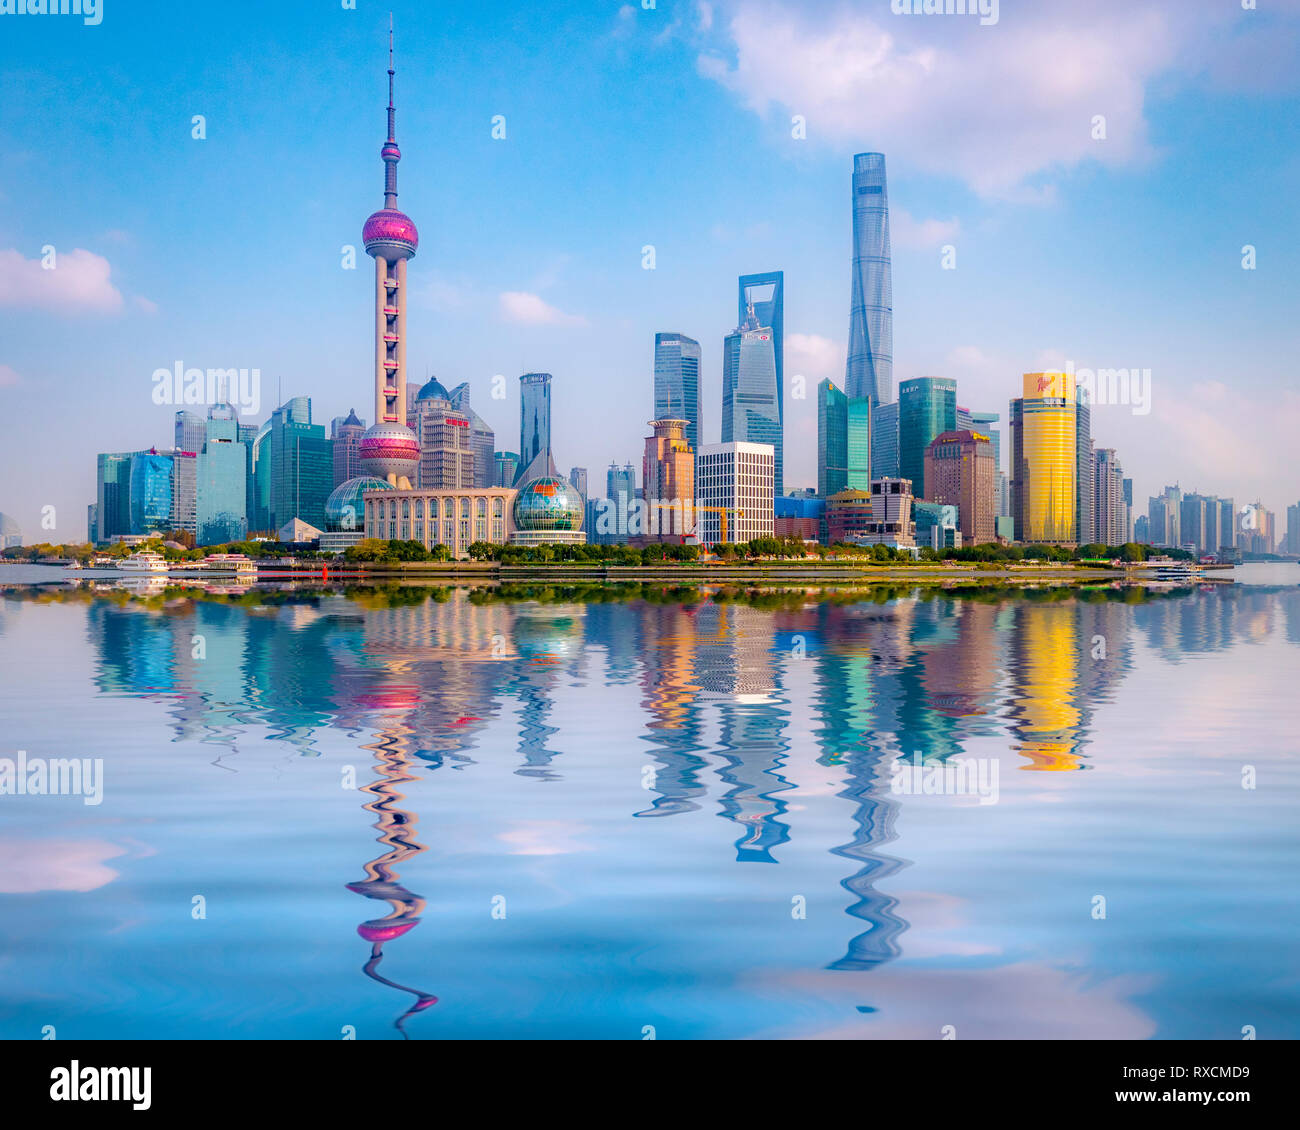 1 December 2018: Shanghai, China - The Huangpu River and the skyline of the Pudong district, Shanghai. Stock Photo